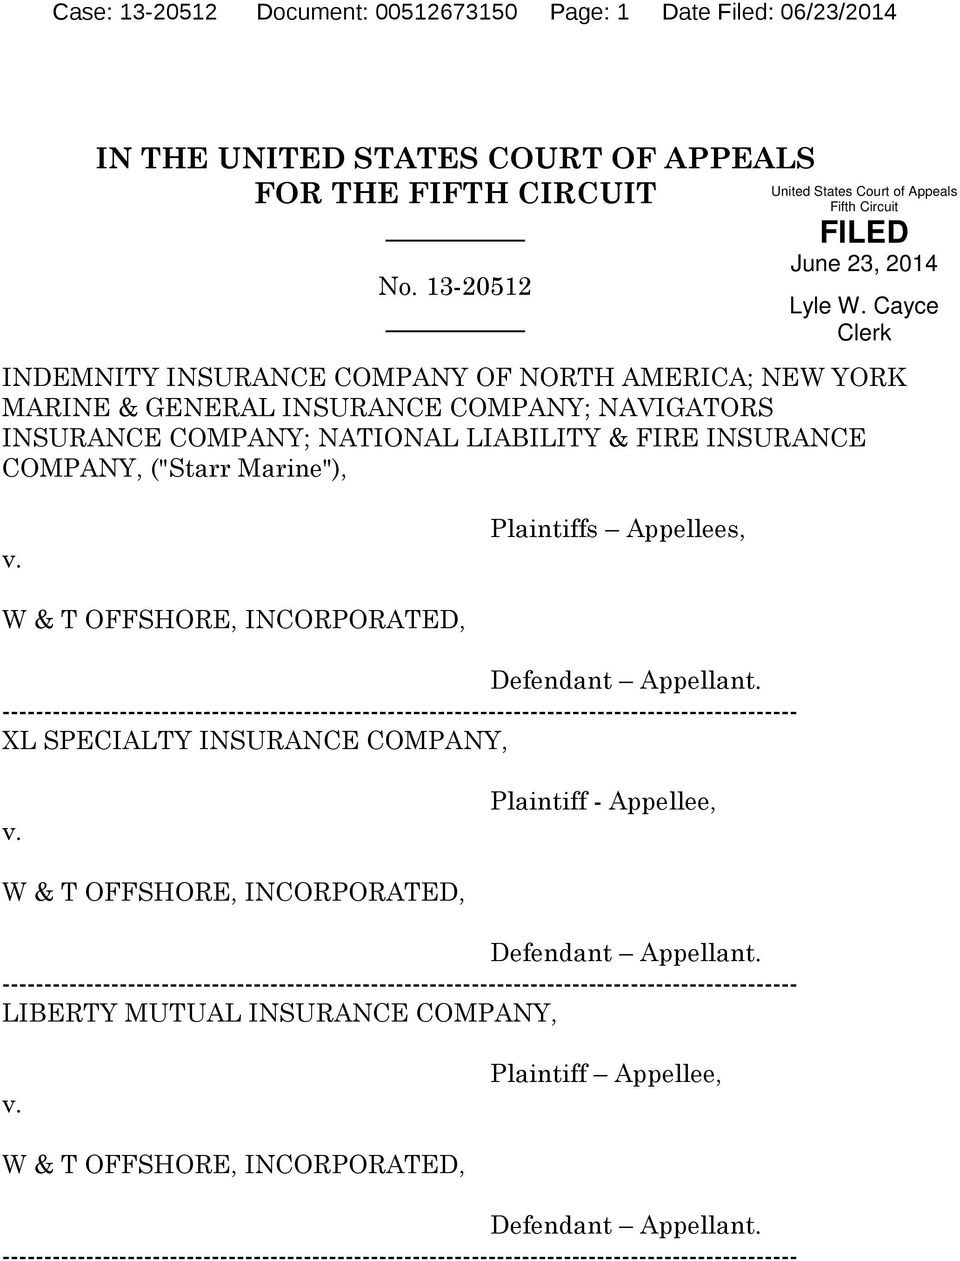 Plaintiffs Appellees, W & T OFFSHORE, INCORPORATED, Defendant Appellant.